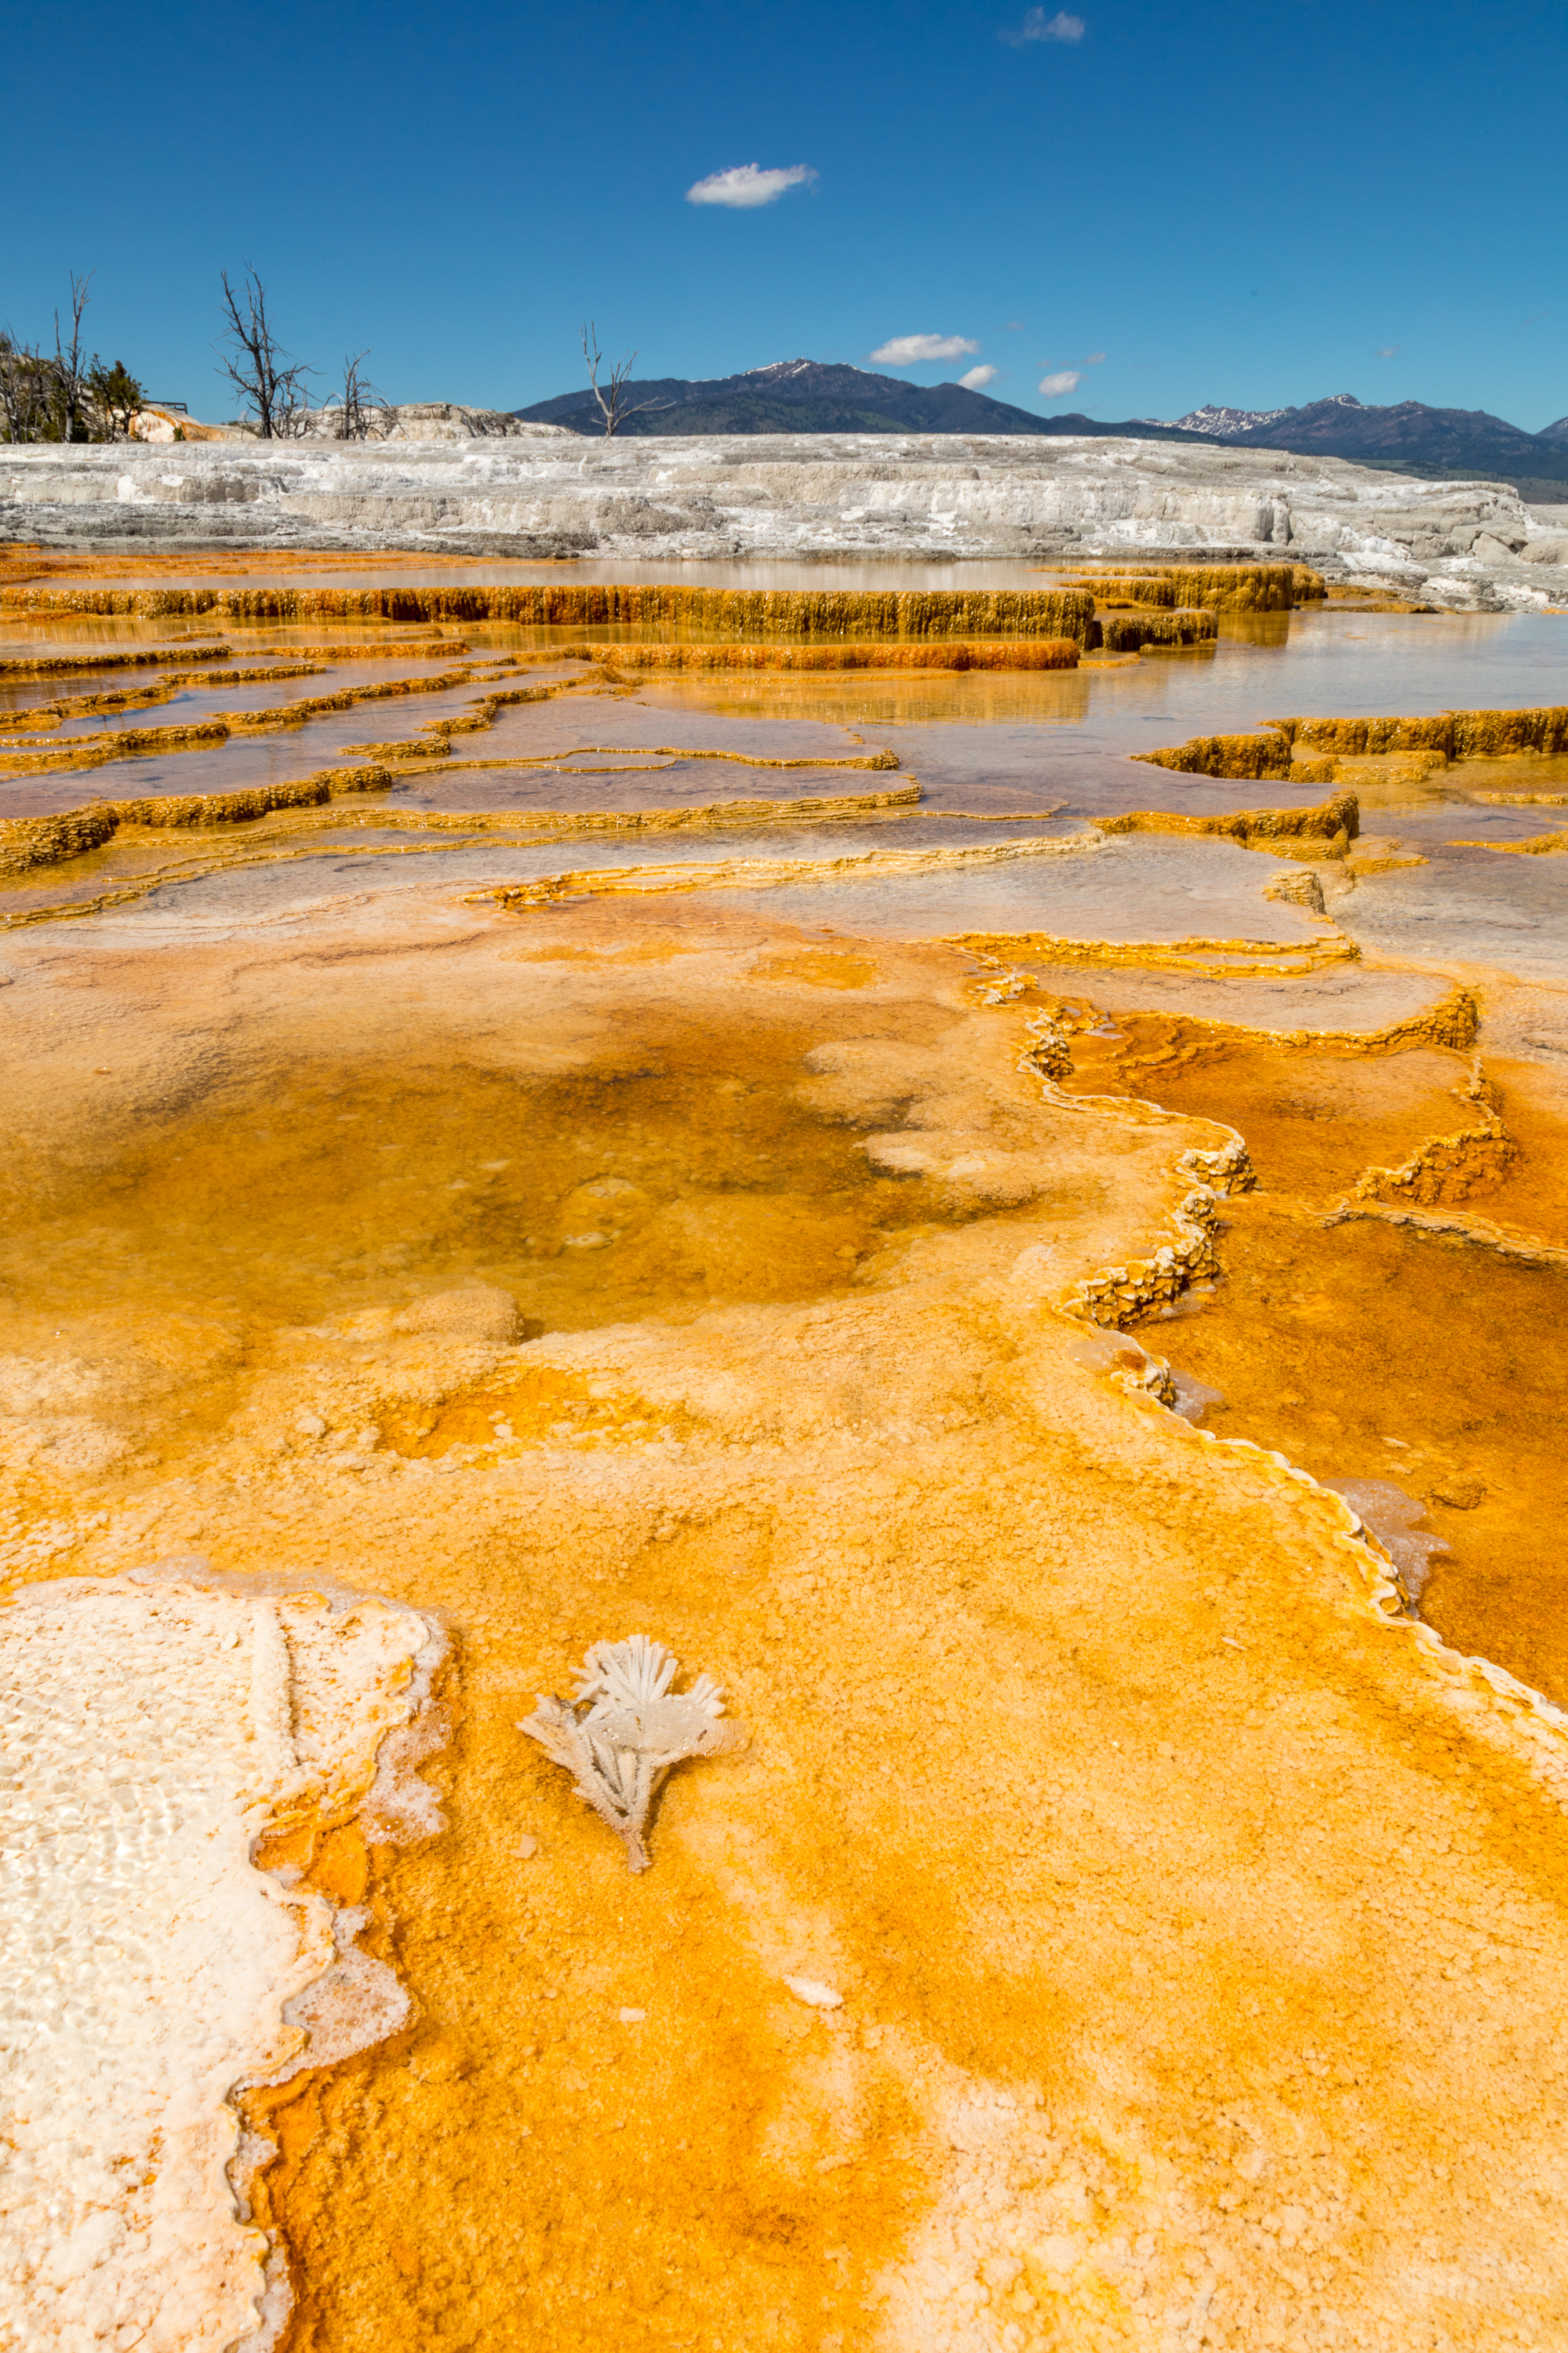 Mammoth Hot Springs, Yellowstone National Park, Image # 7518